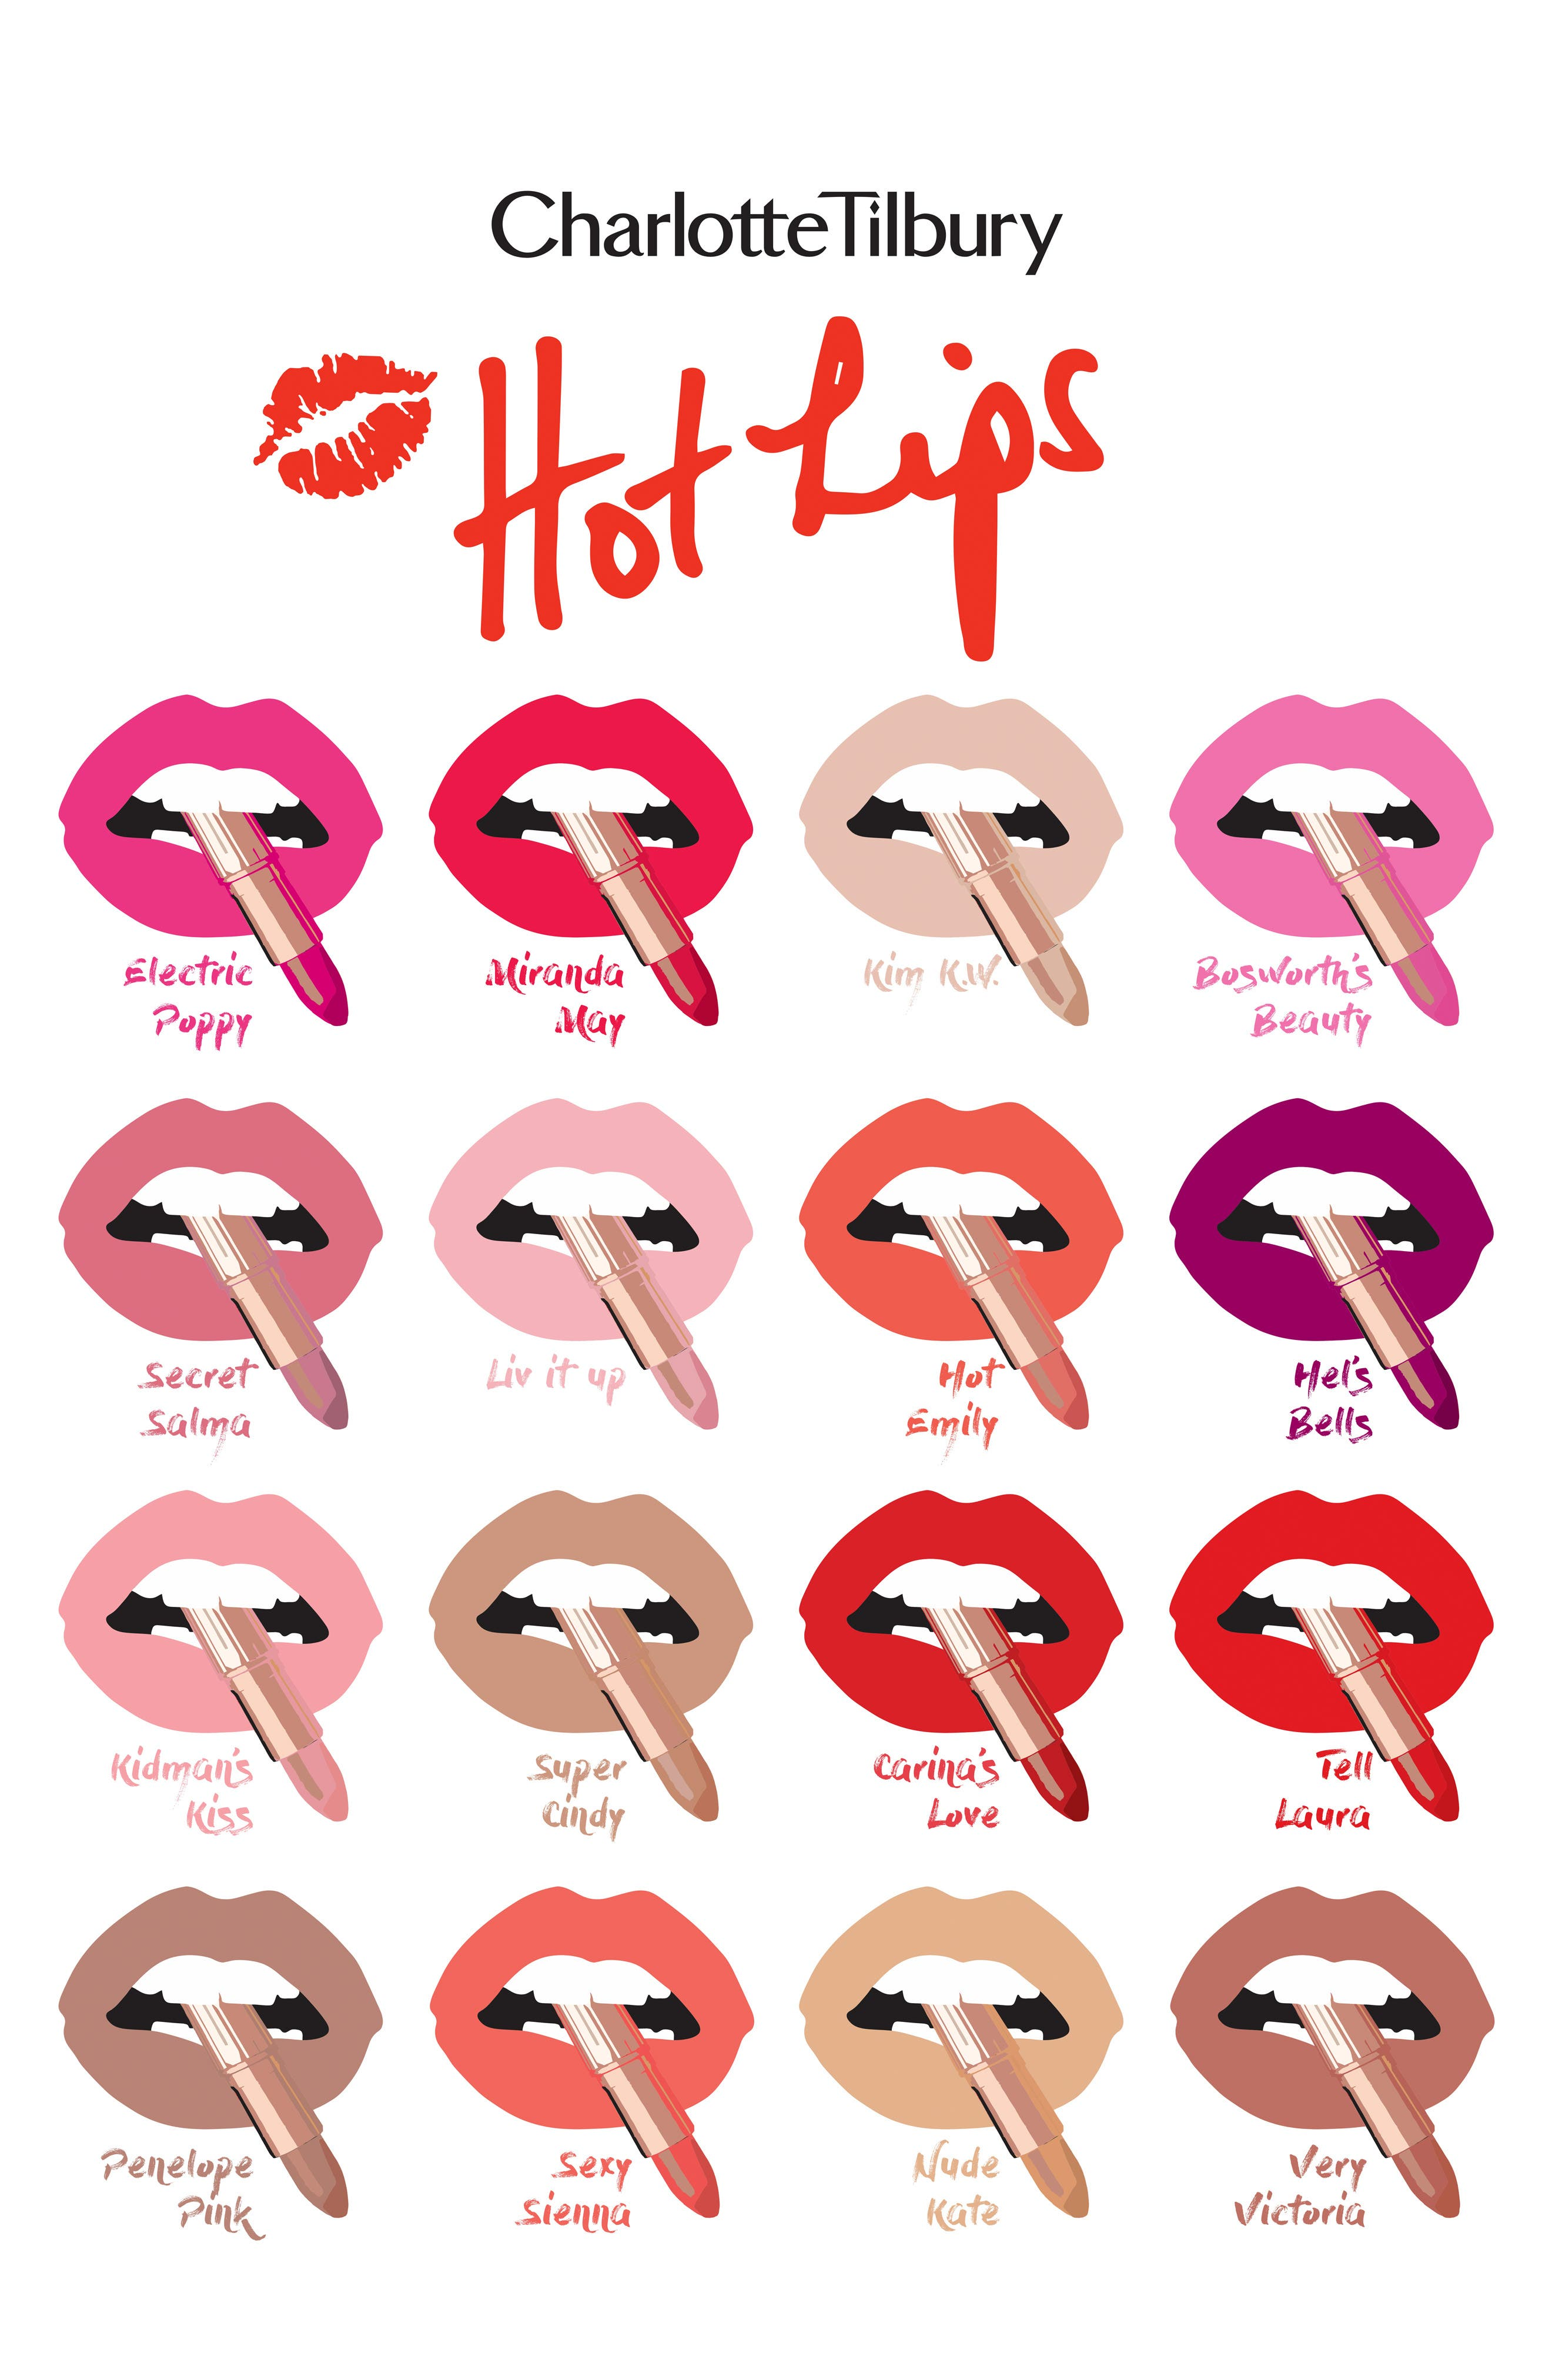 Hot Lips Lipstick,                             Alternate thumbnail 2, color,                             KIM K.W